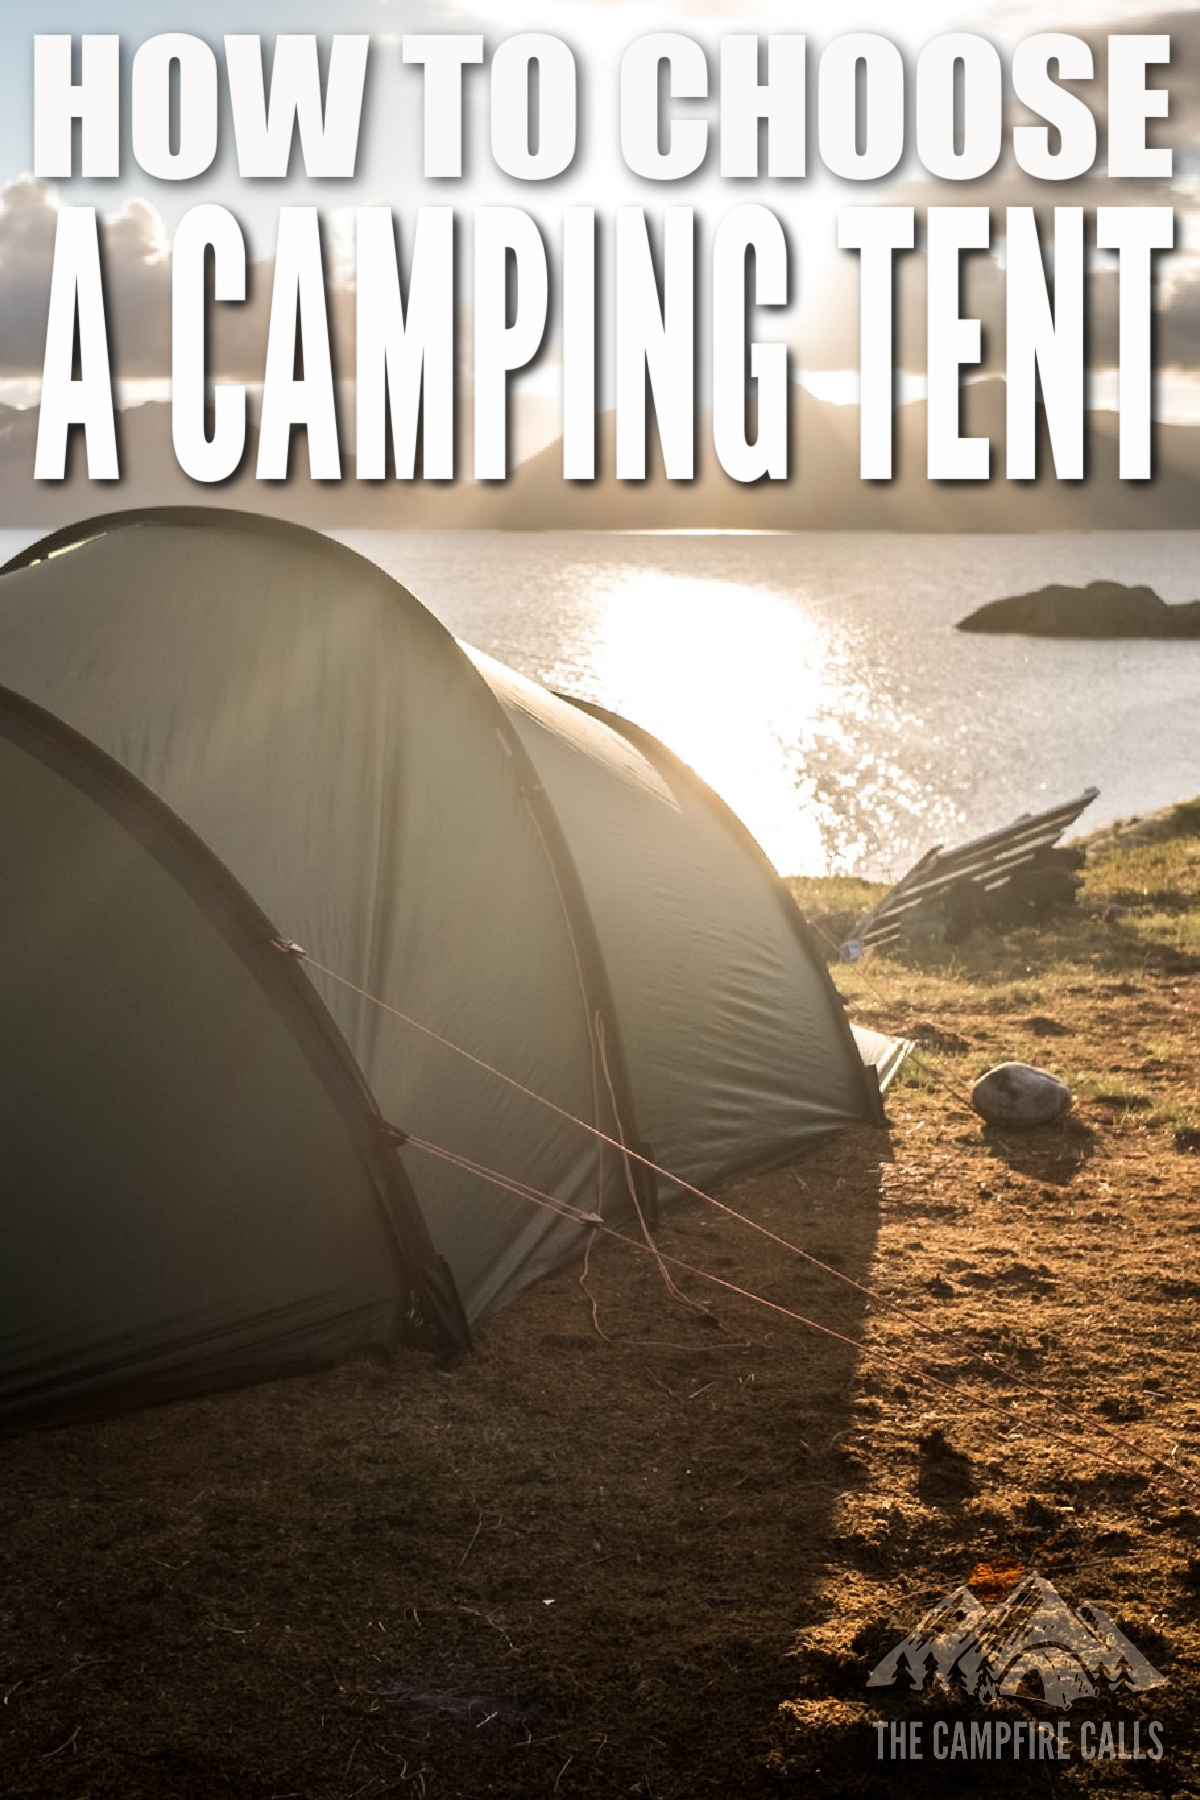 Here's our guide on how to choose a camping tent. We're going to show you the important points to consider when choosing a camping tent.